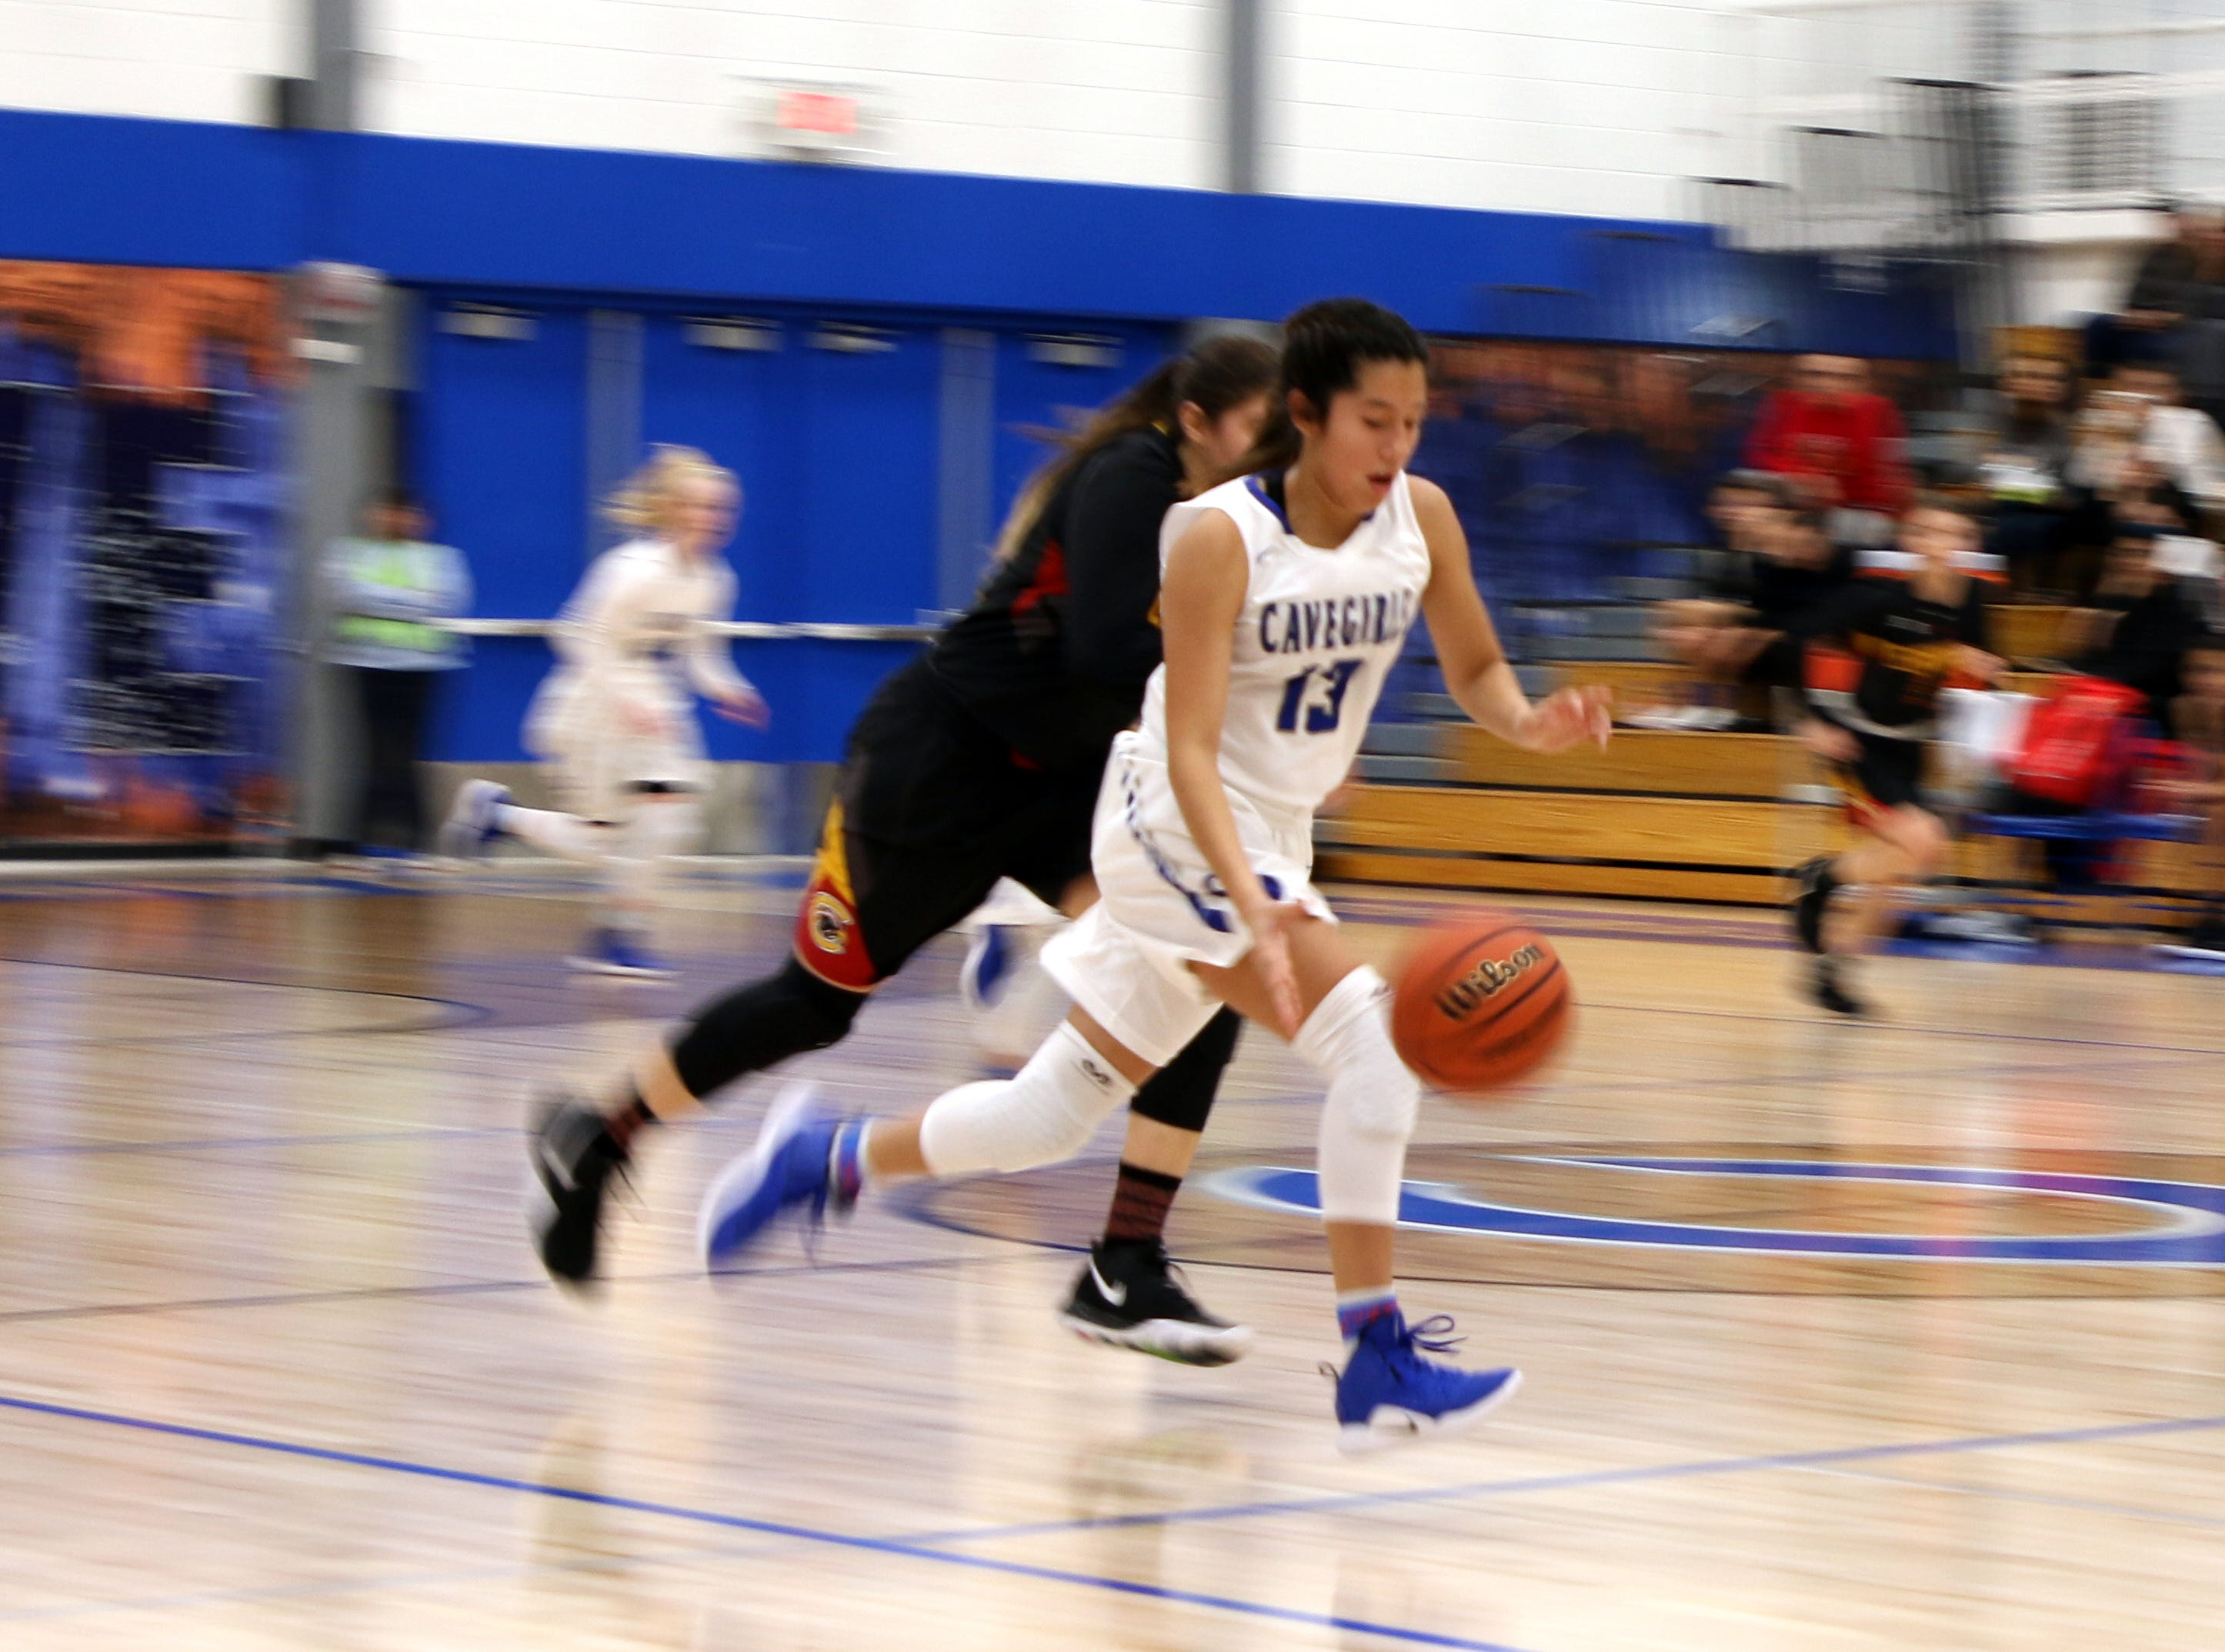 Carlsbad's Tori Flores starts a fastbreak during Saturday's game against the  Centennial Hawks. Carlsbad won, 48-32.